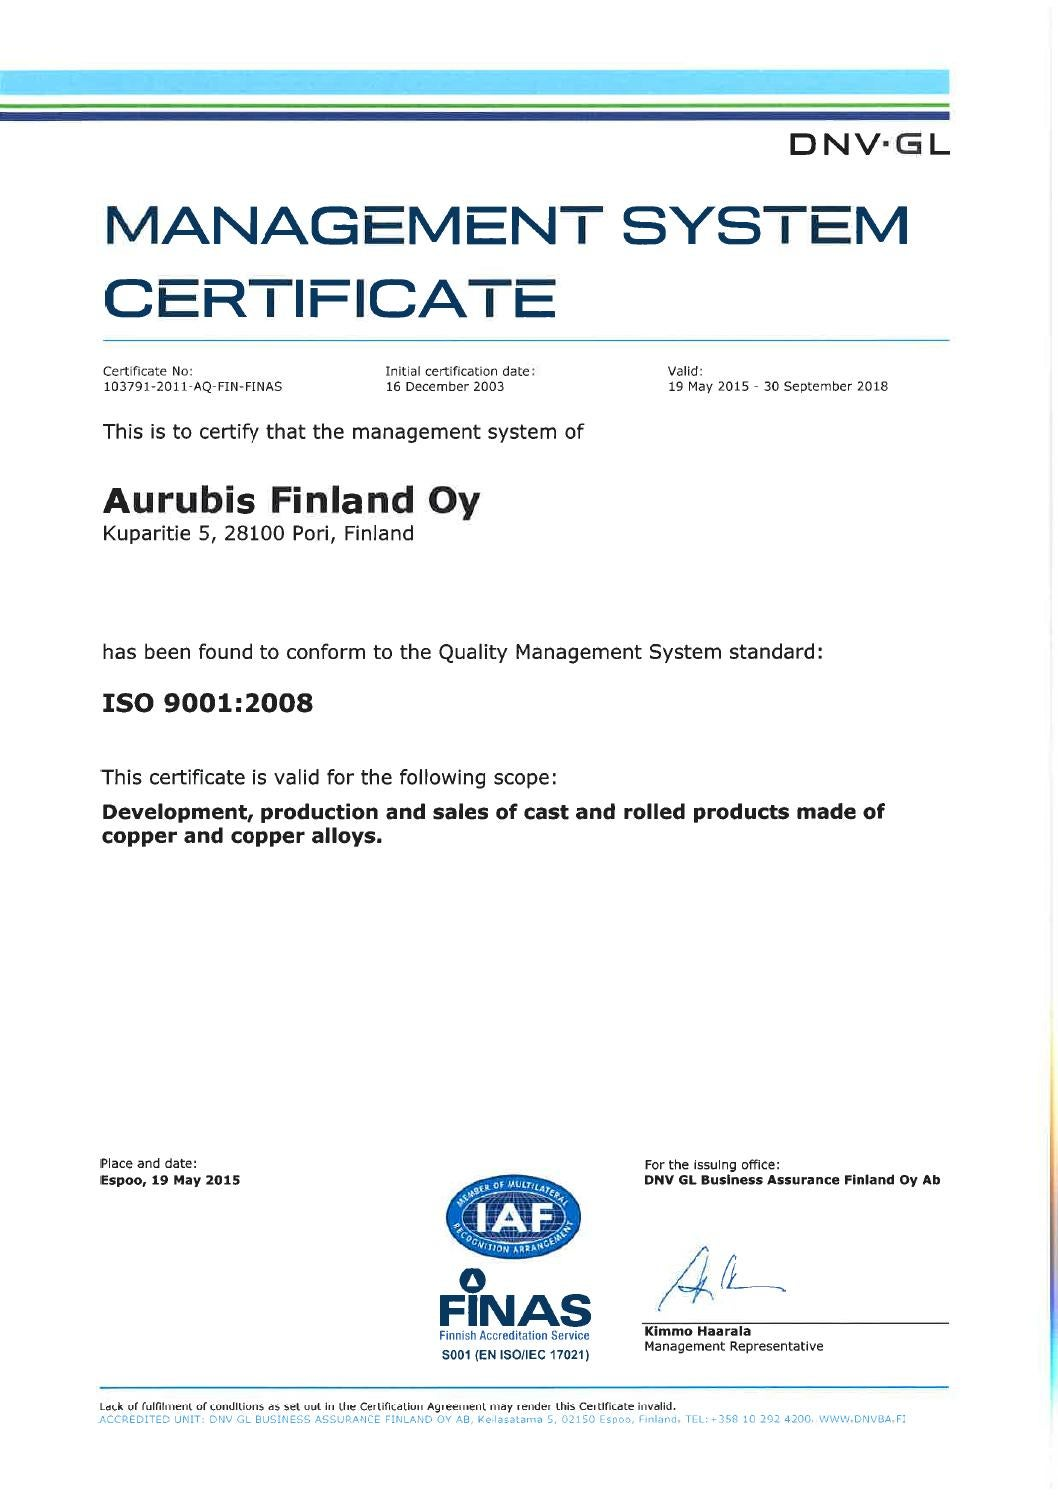 aurubis dnv management system certificate iso 9001 2008. Black Bedroom Furniture Sets. Home Design Ideas